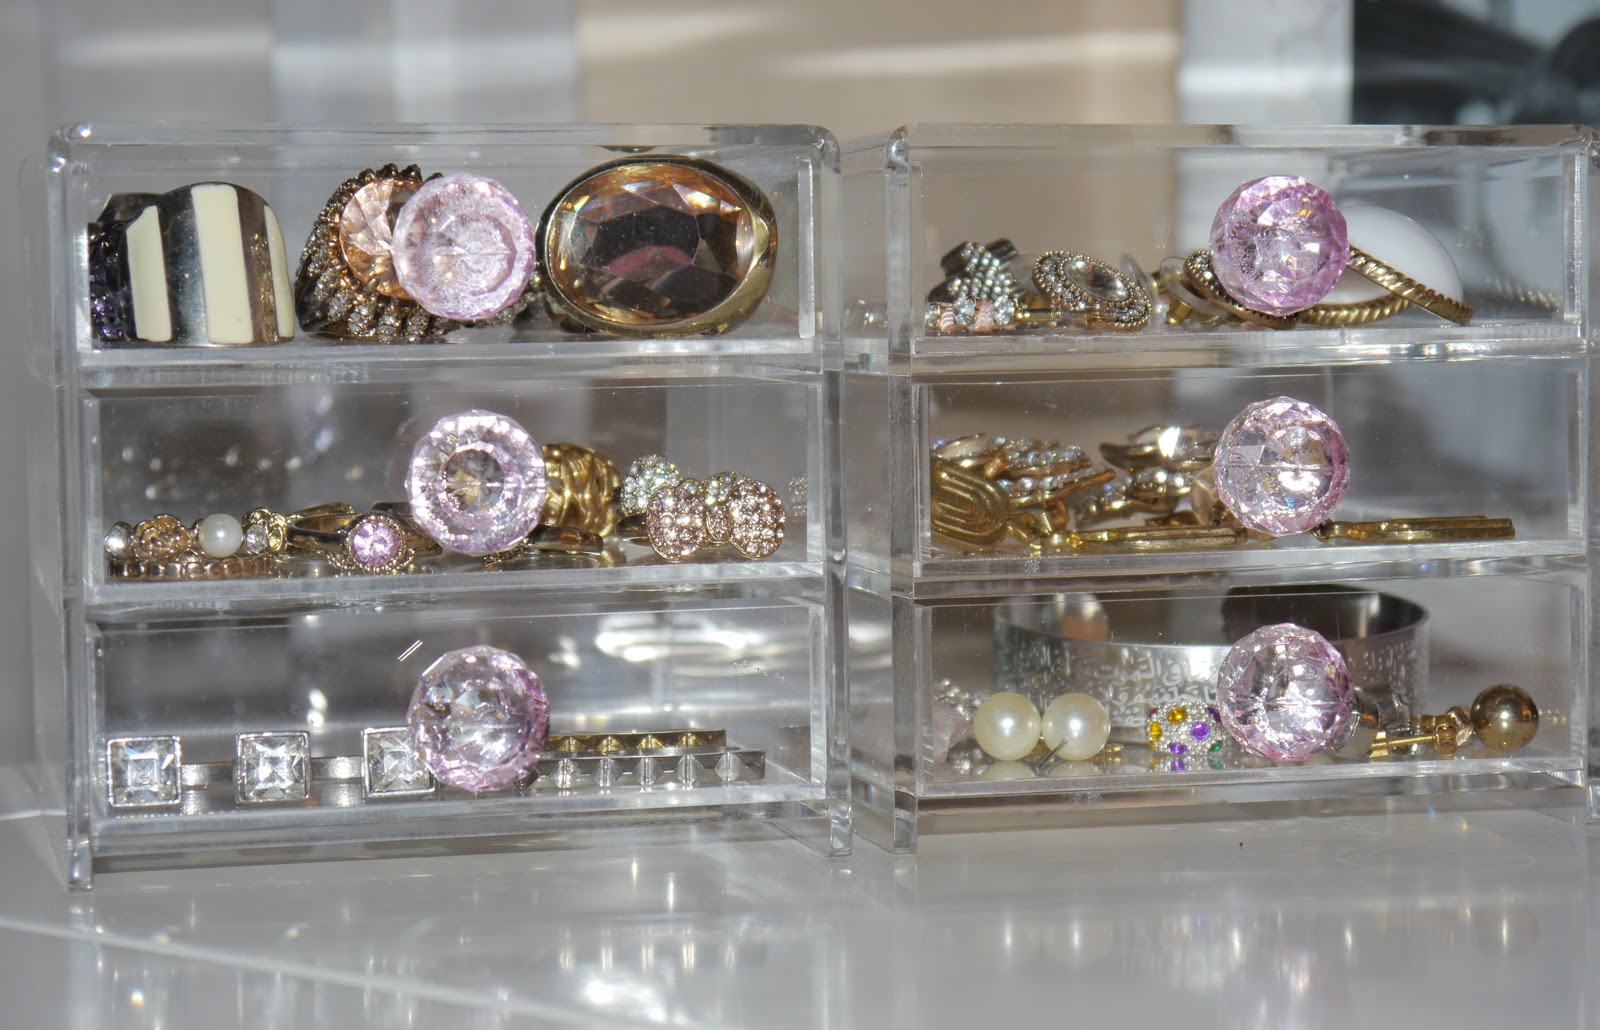 Cute Jewelry Storage Idea! Clear Acrylic Box & Annie Jaffrey: Cute Jewelry Storage Idea! Clear Acrylic Box